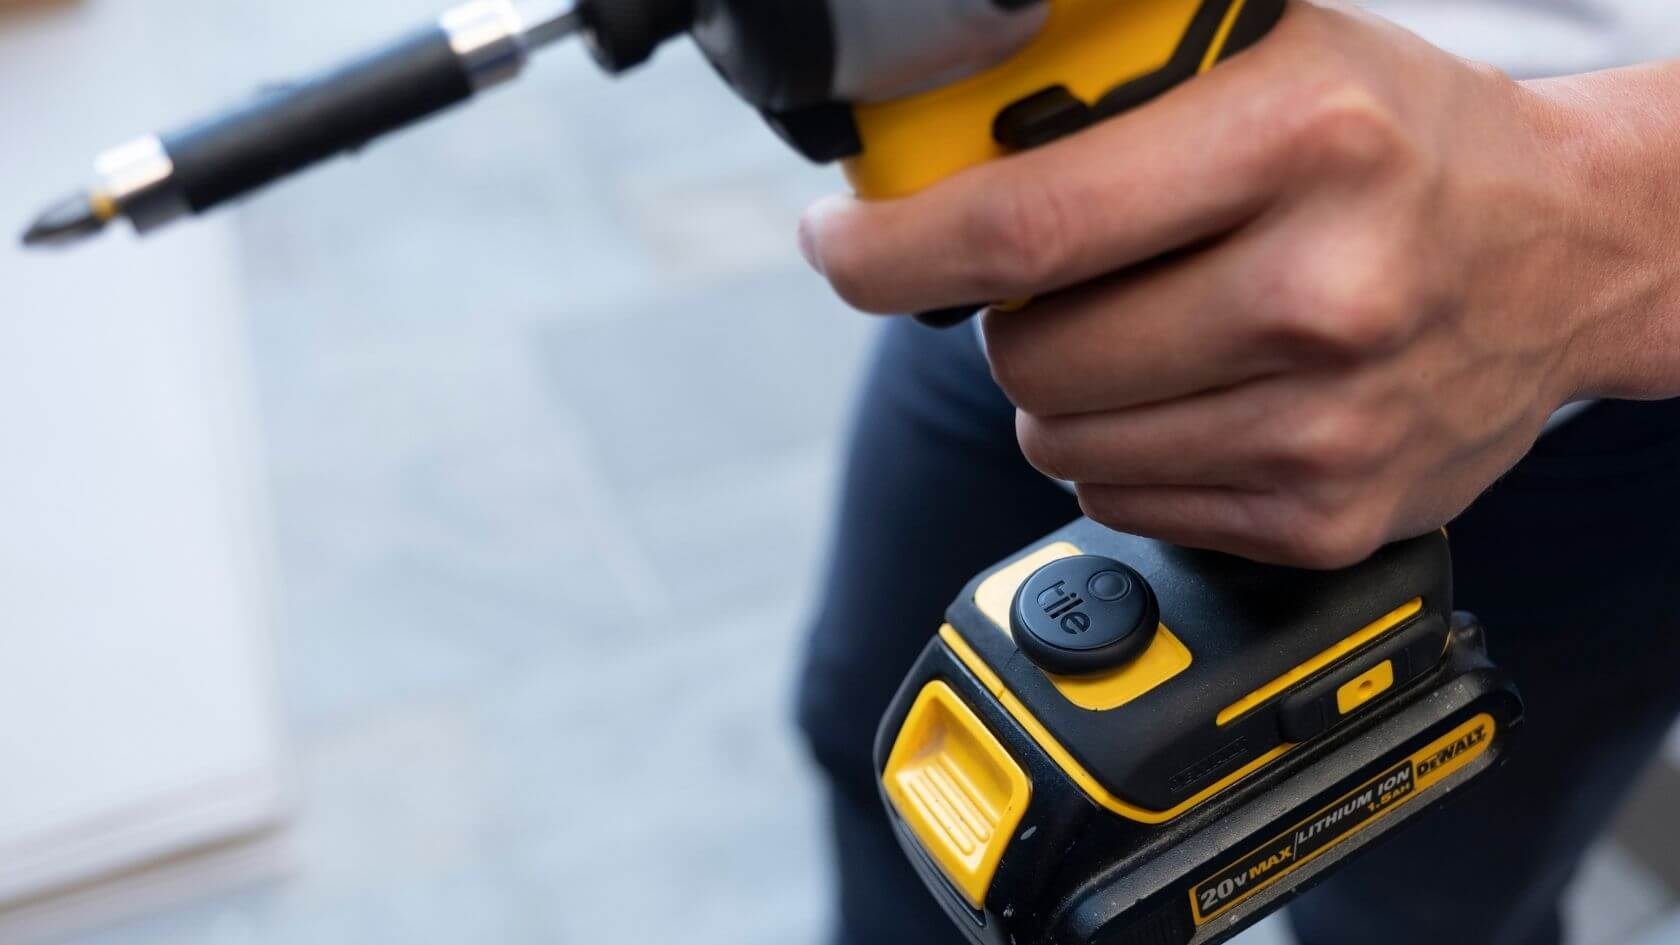 Tile Sticker is a great tool tracker to help you find your lost or stolen power drill.